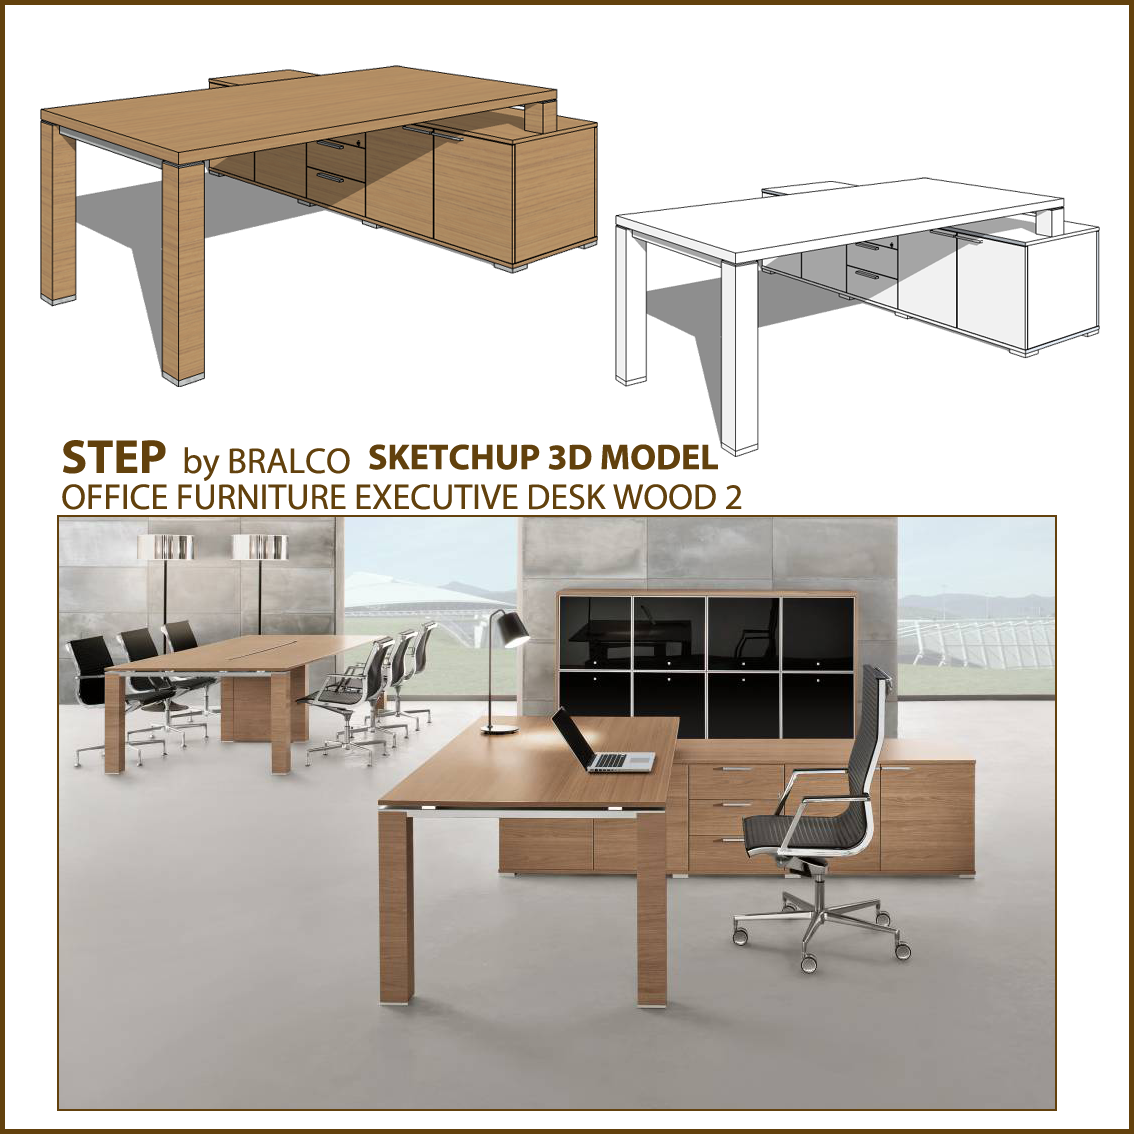 chair design sketchup ergonomic benefits free 3d model office wood executive desk jet